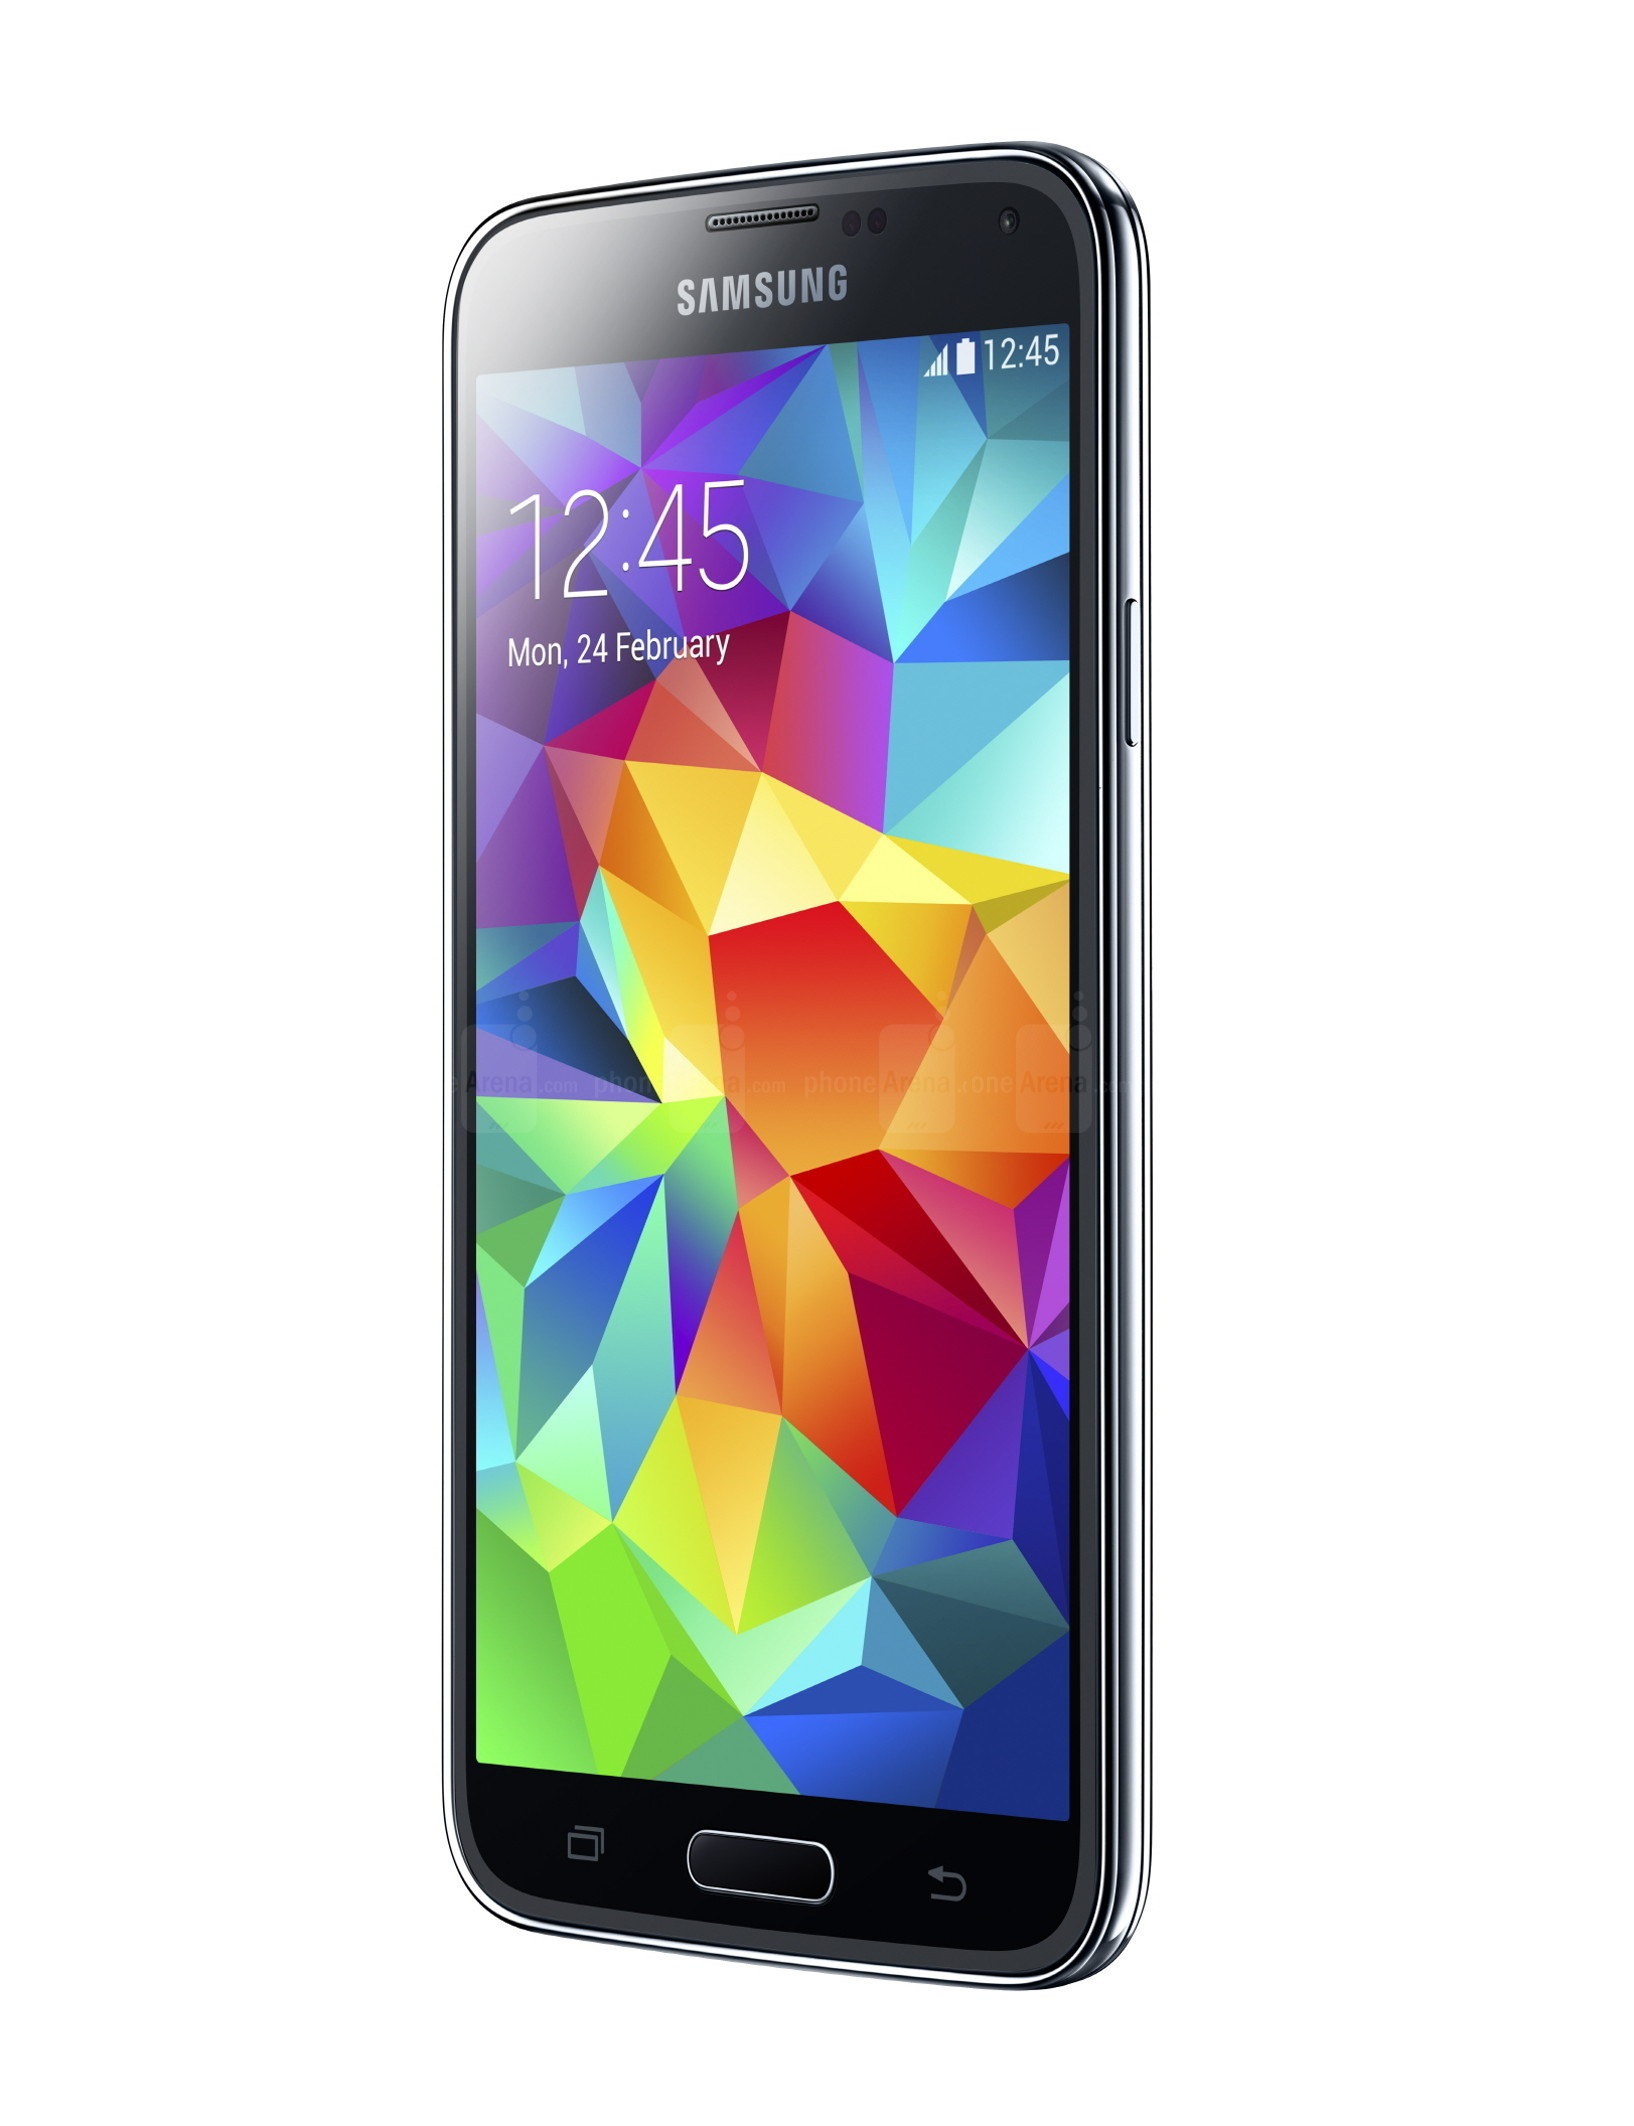 samsung galaxy s4 mini 16gb sph l520 android smartphone for sprint black fair condition. Black Bedroom Furniture Sets. Home Design Ideas